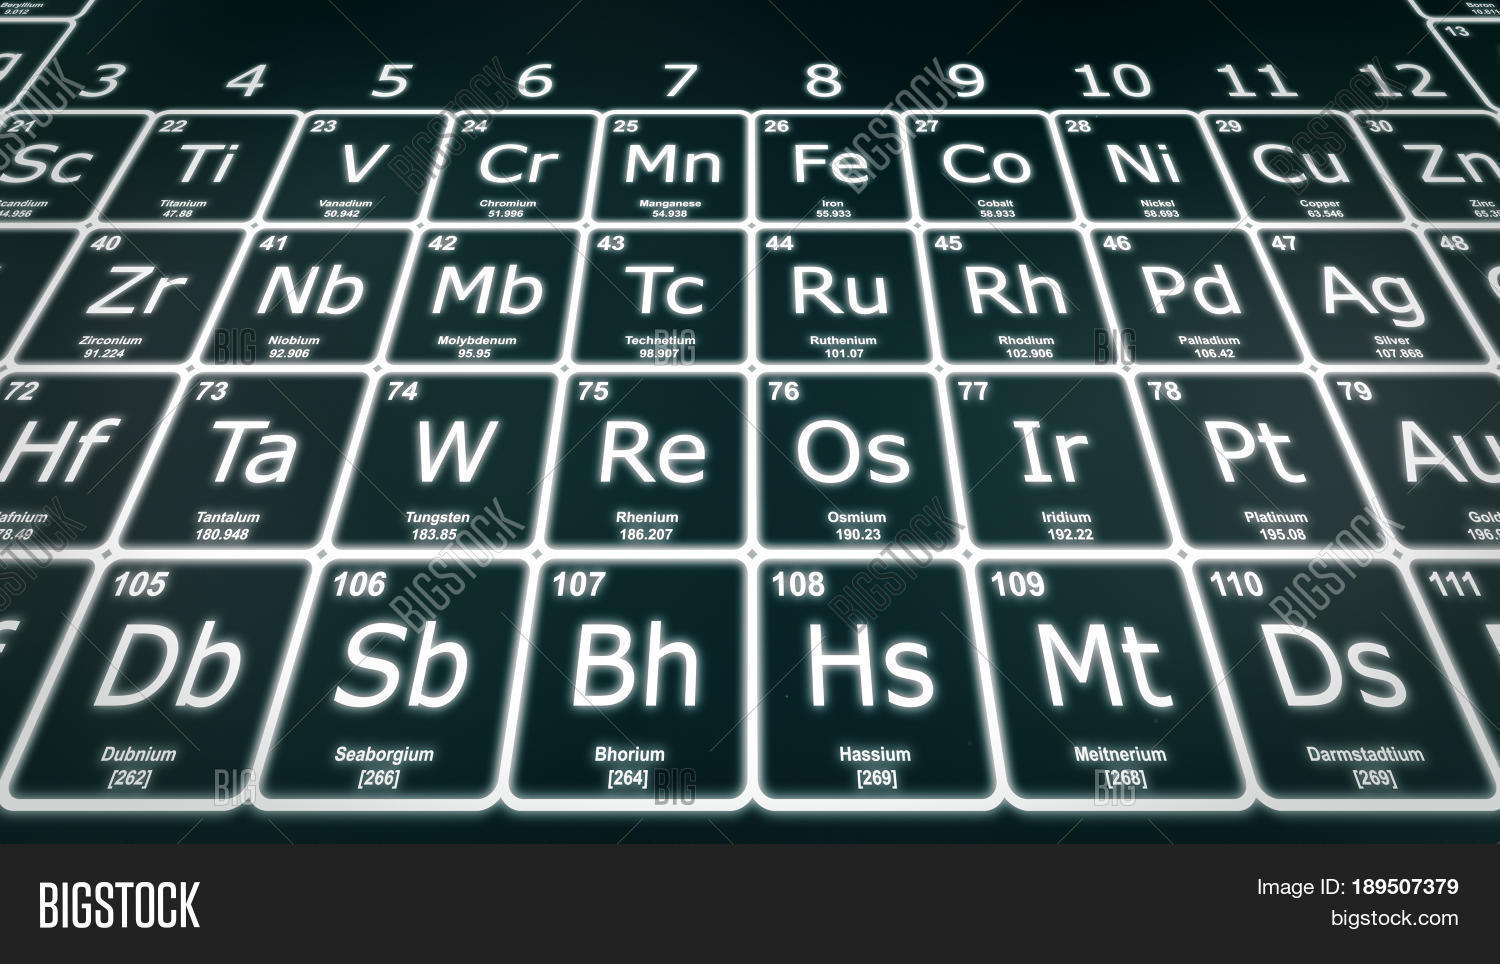 Perspective closeup periodic table image photo bigstock perspective closeup of the periodic table of the elements in white on a dark green background gamestrikefo Gallery